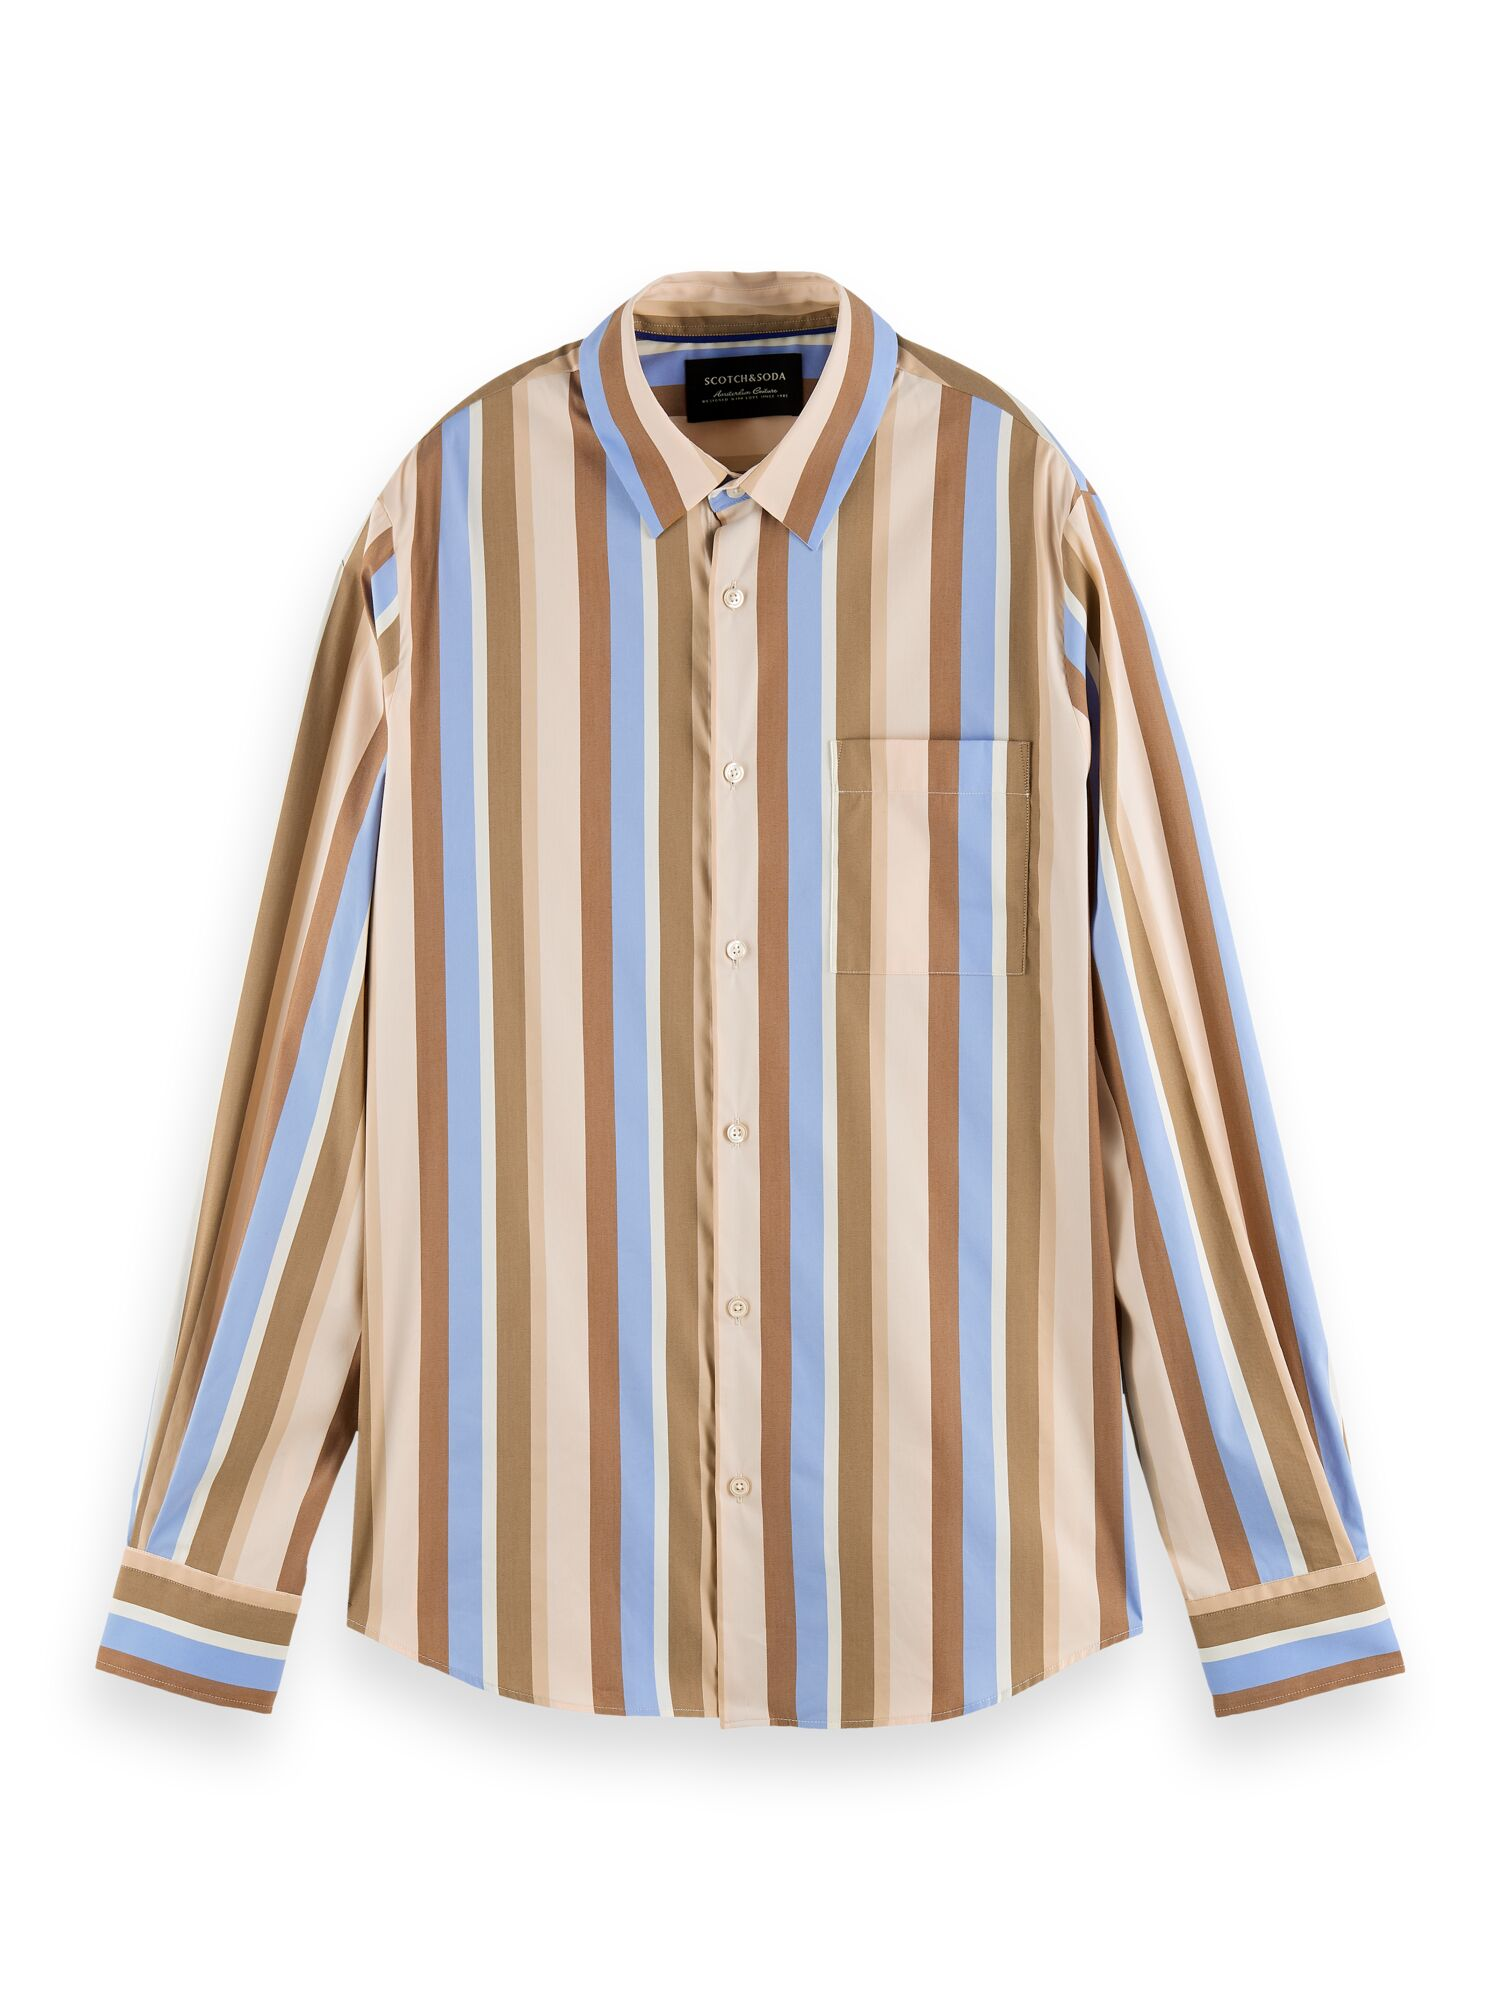 Scotch & Soda | RELAXED FIT- striped shirt